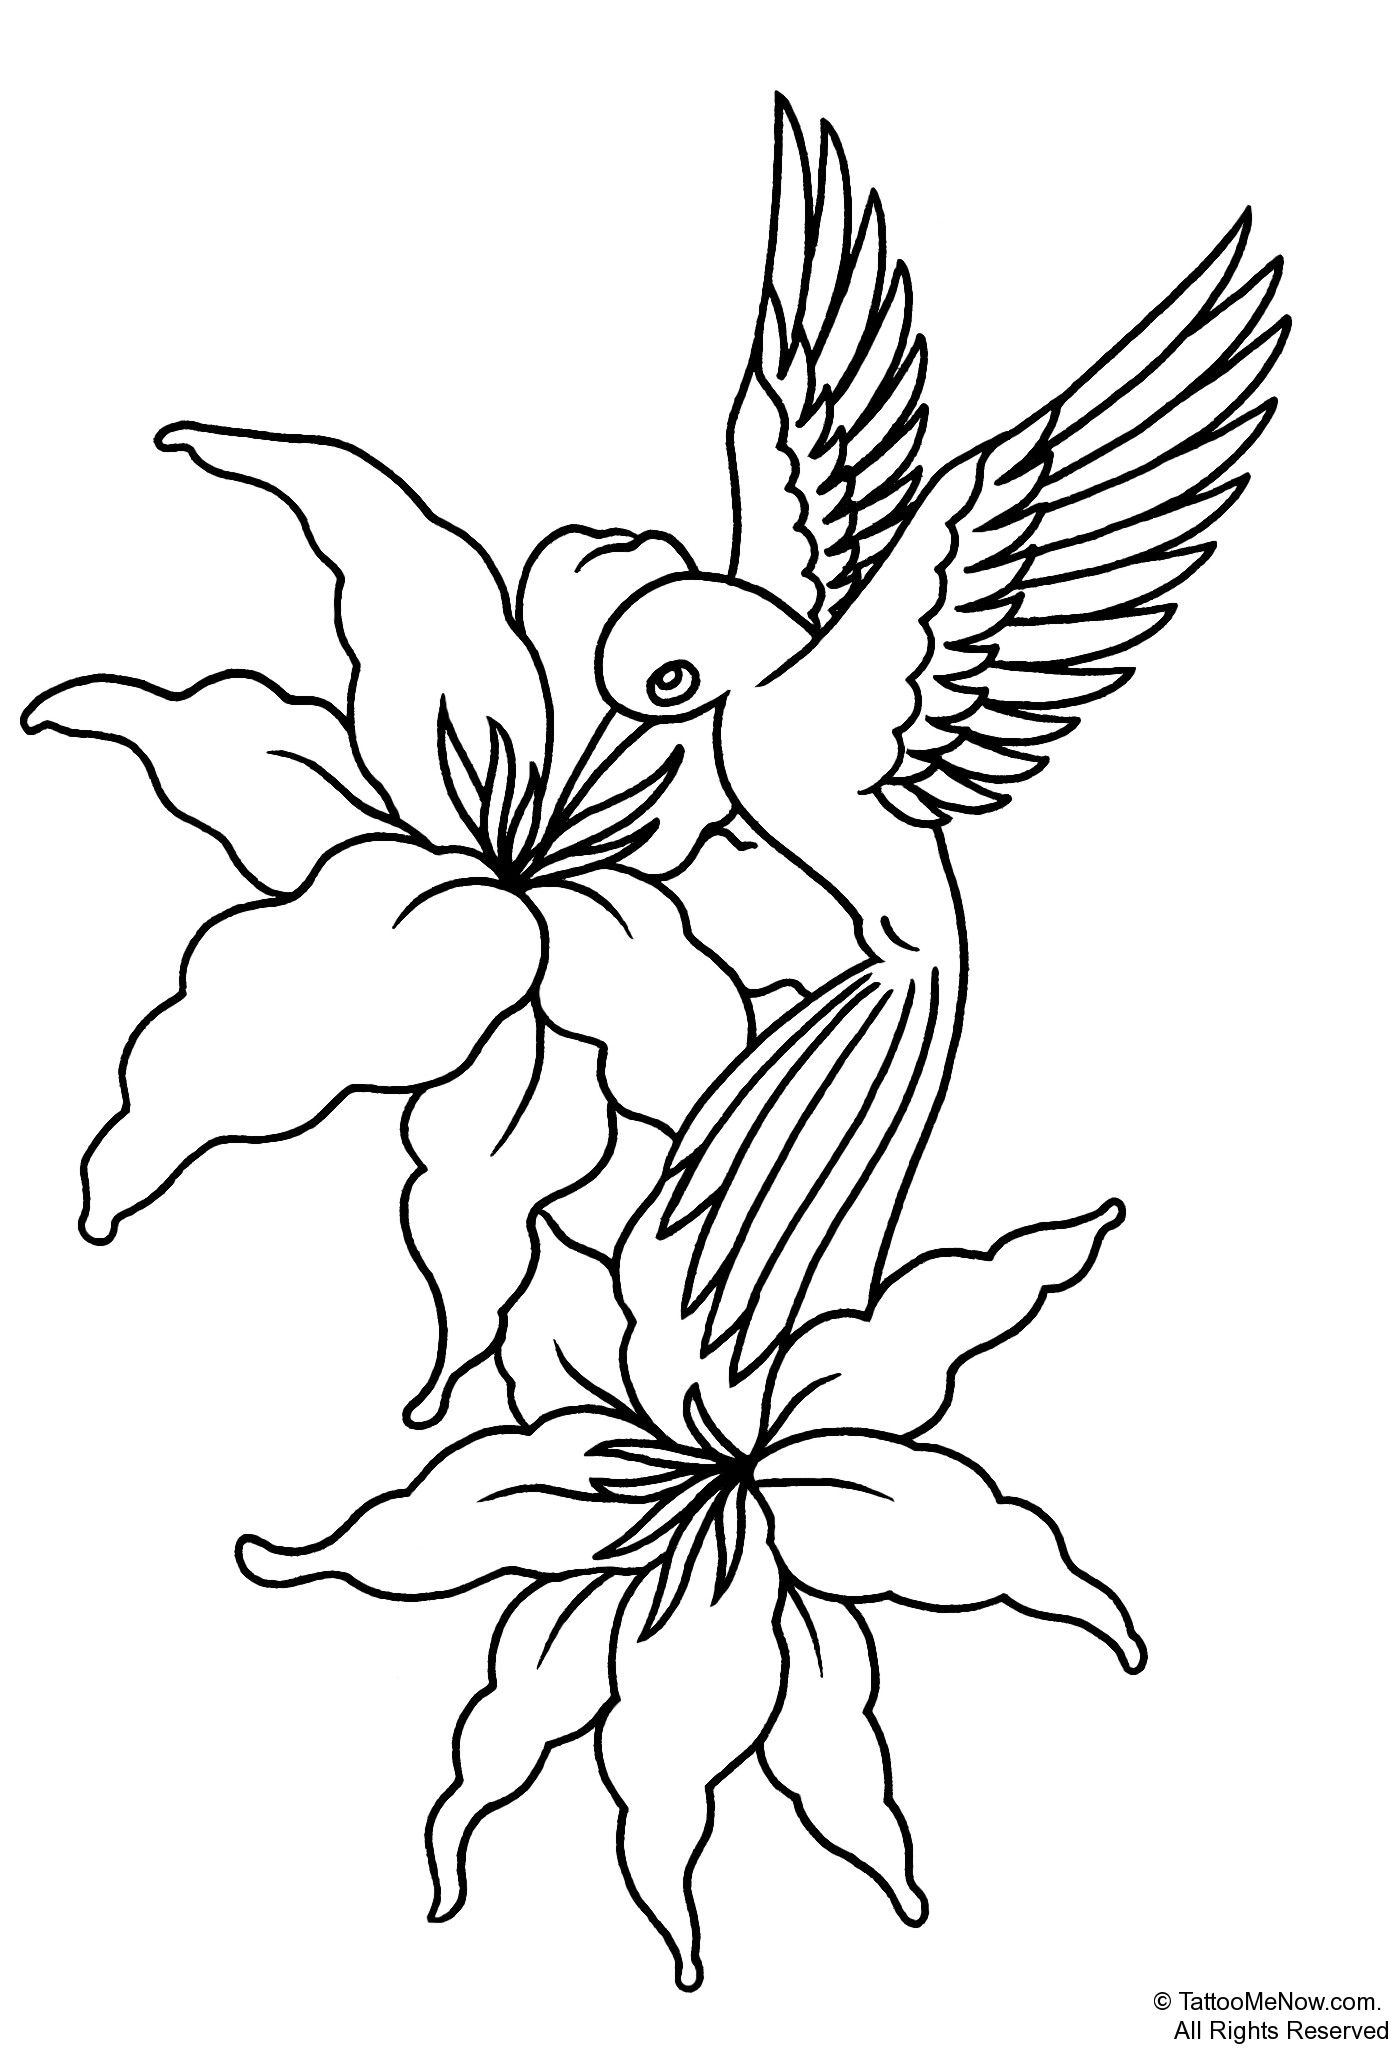 Flower Stencils Printable | Your Free Printable Tattoo ...